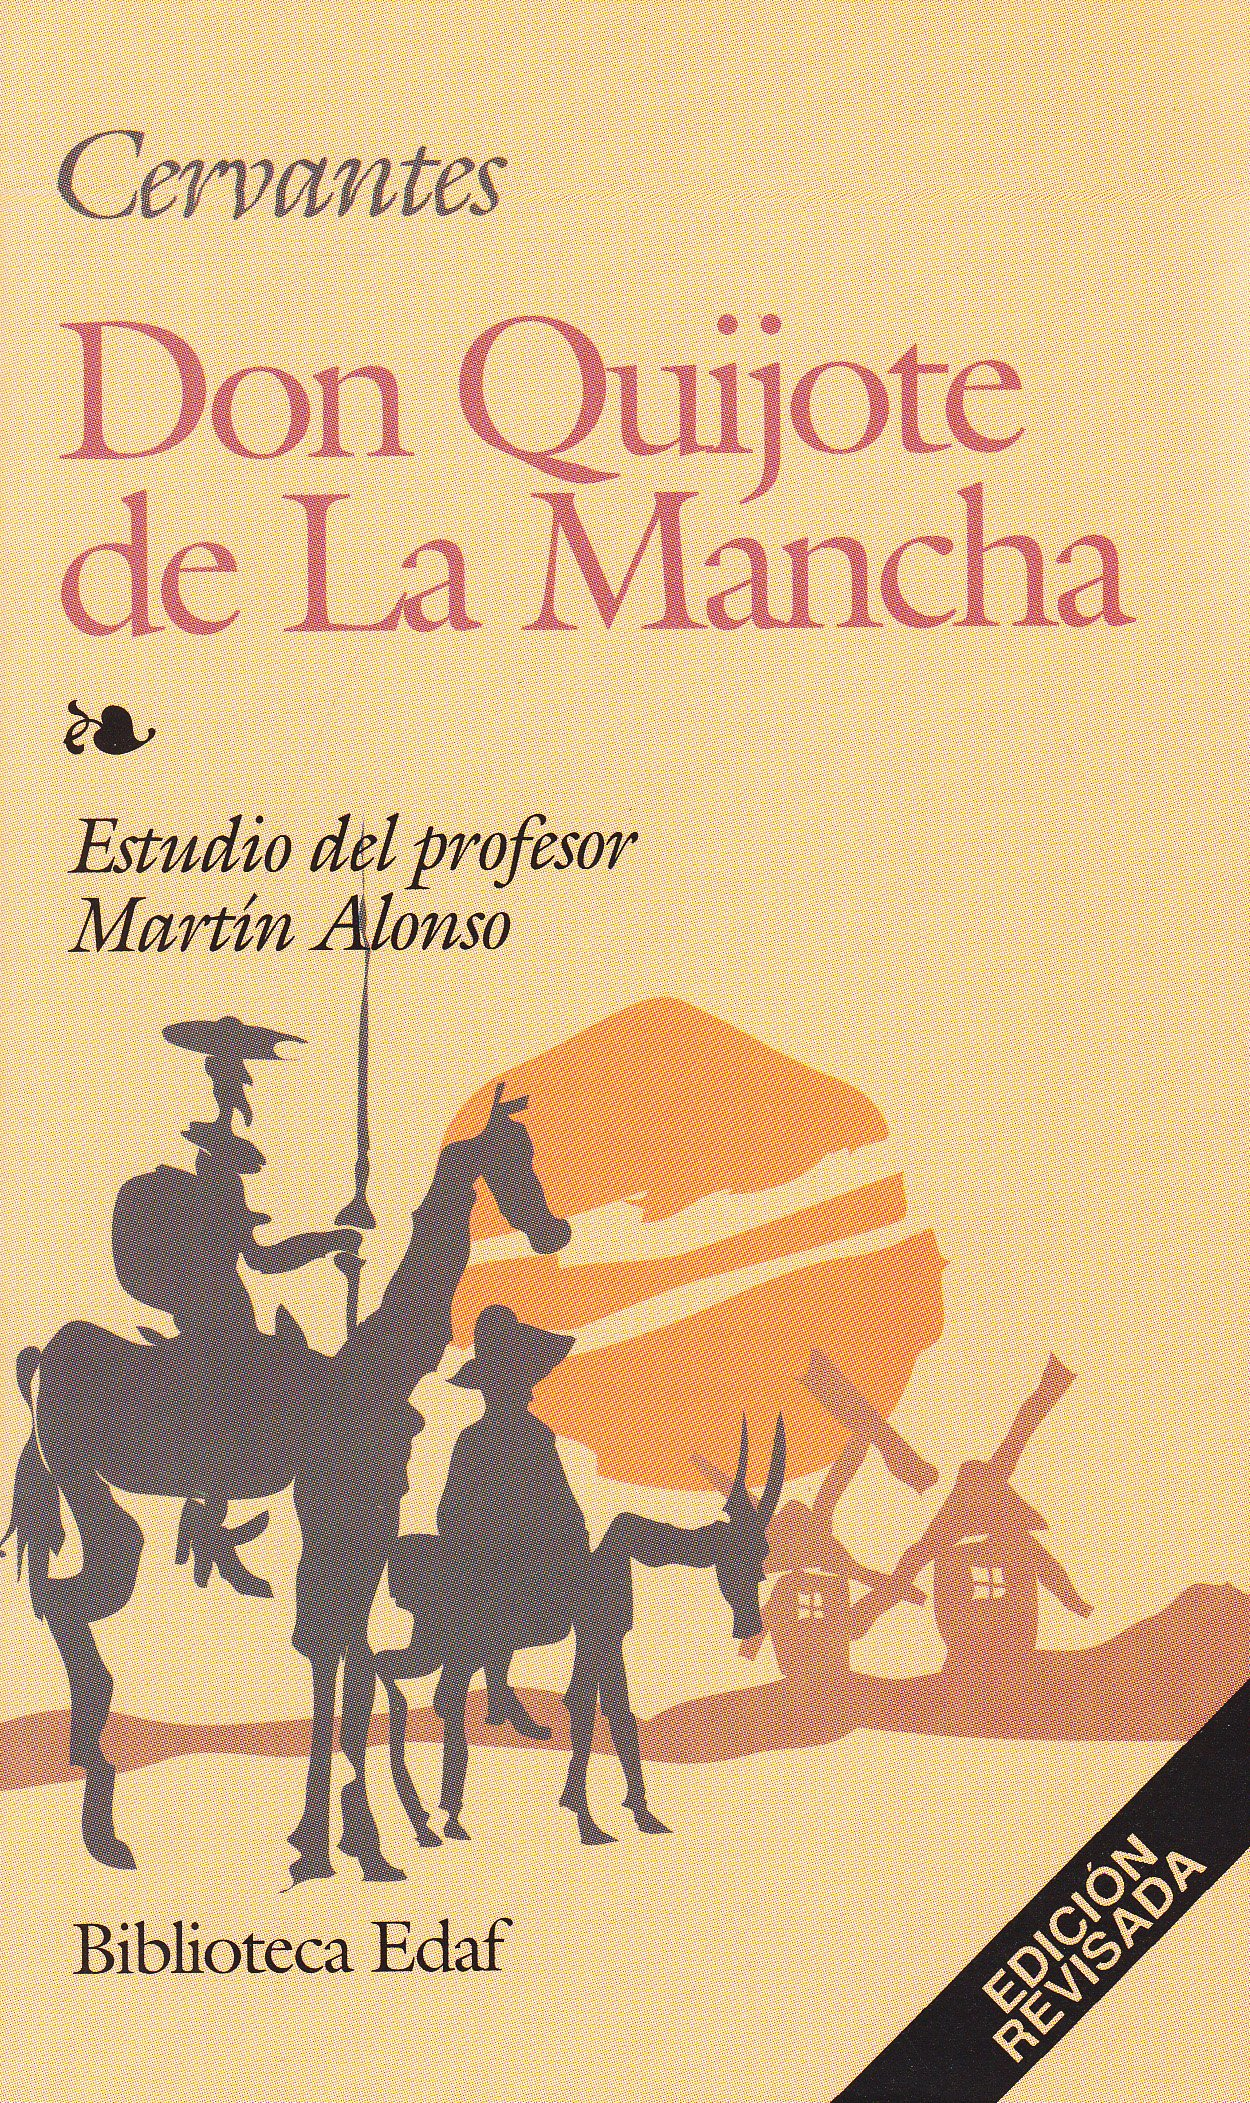 Read Online Don Quijote de La Mancha (Spanish Edition) PDF